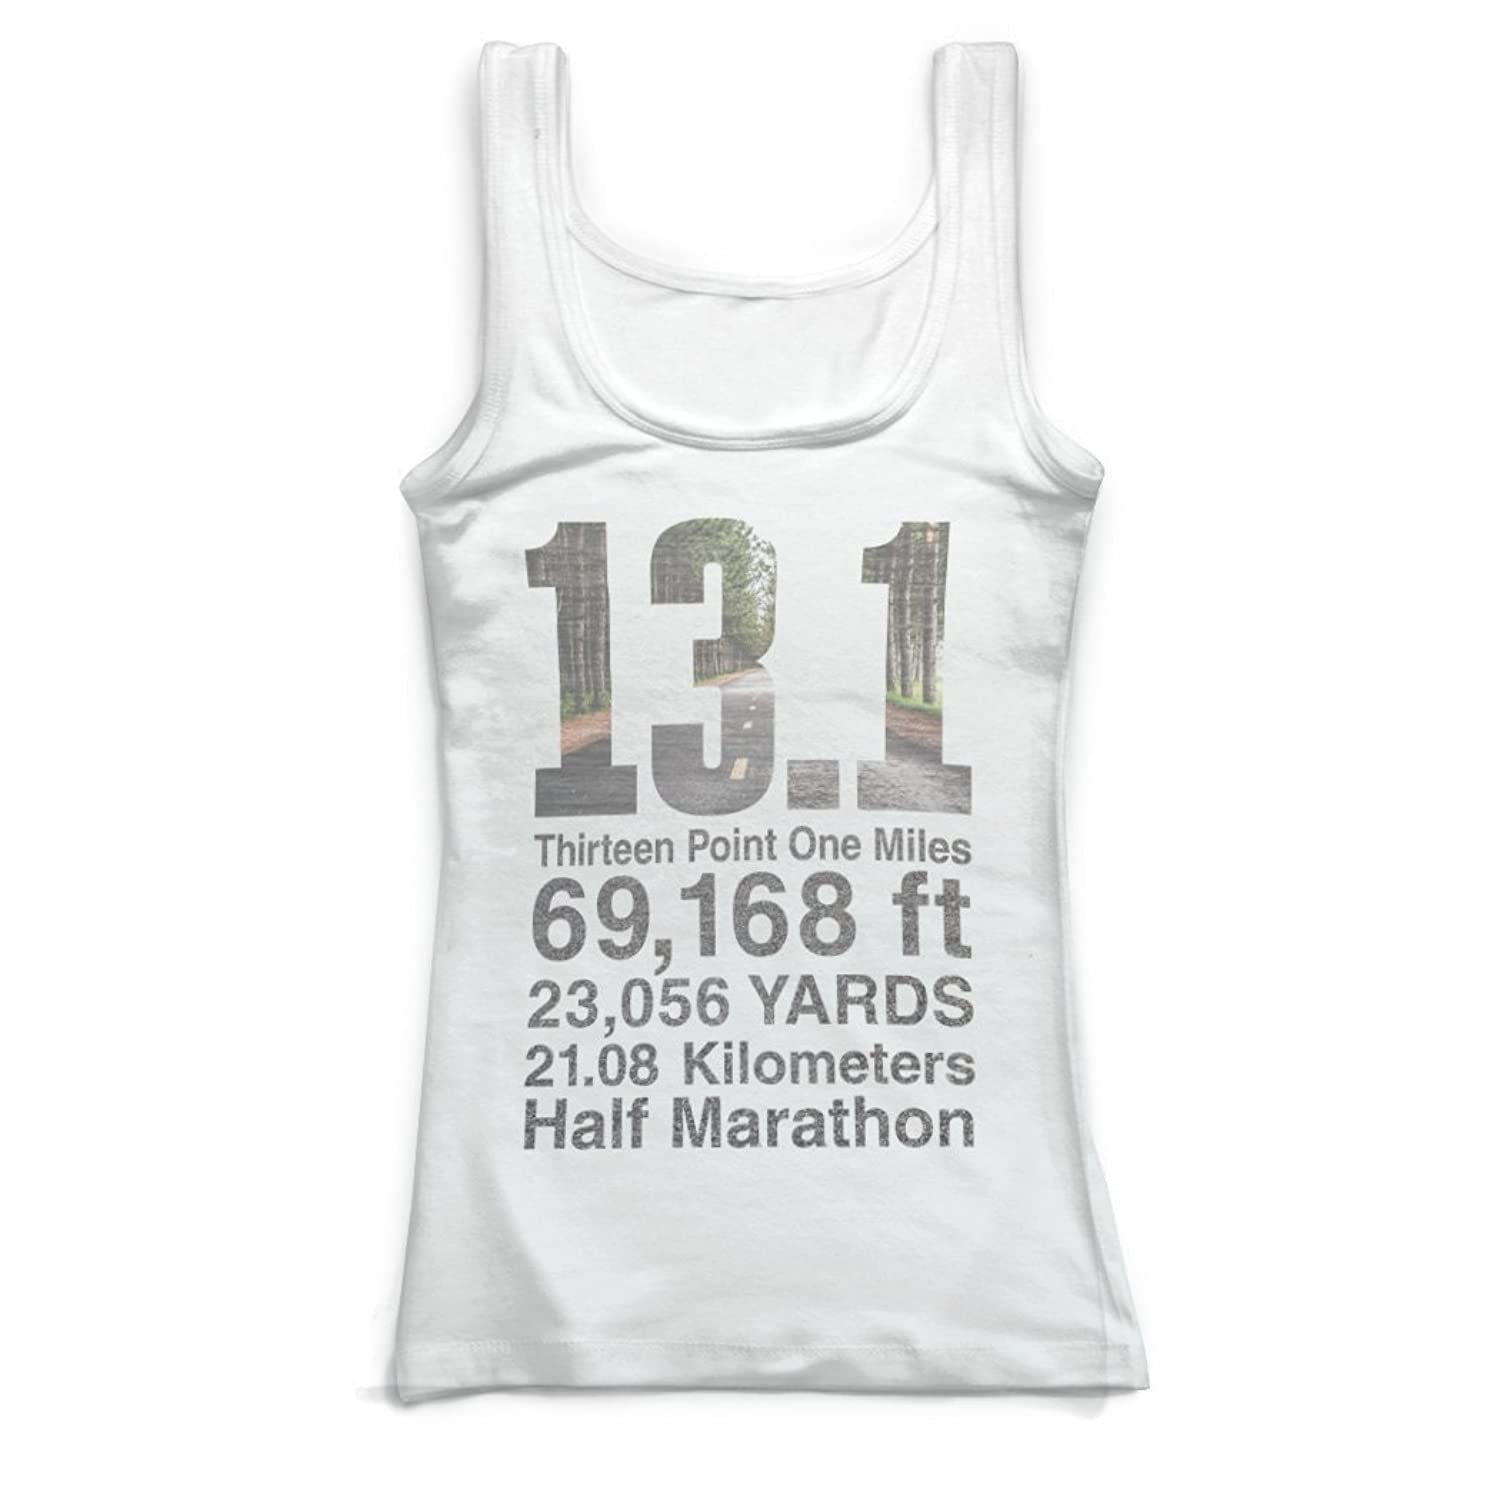 Gone For a Run Running Vintage Fitted Tank Top - 13.1 Math Miles